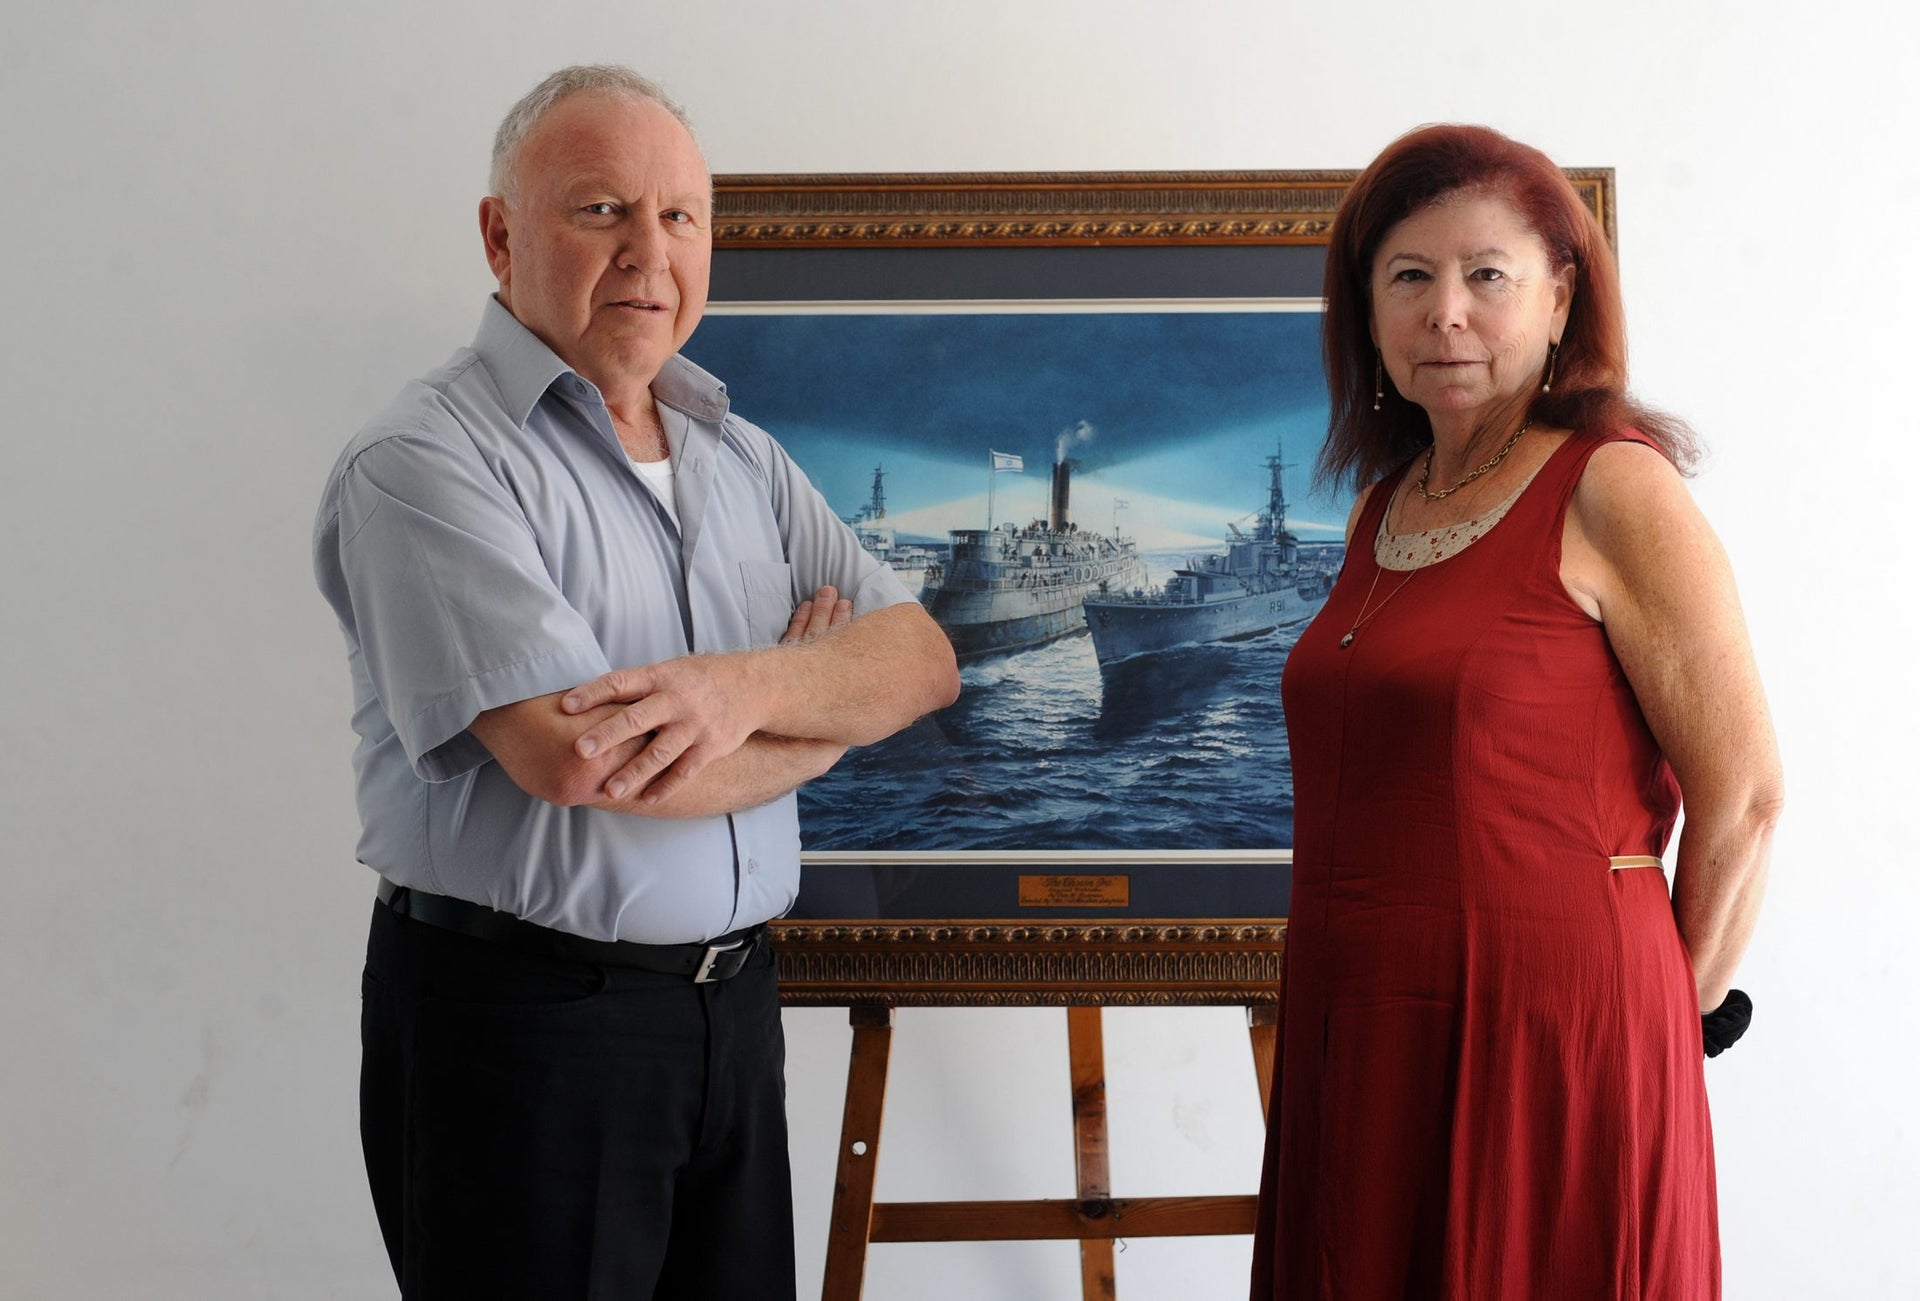 Zvi Hatkevitz (L) and Tzipi Portnoy, both 'children of the Exodus,' stand in front of a drawing of the ship, August 23, 2017.